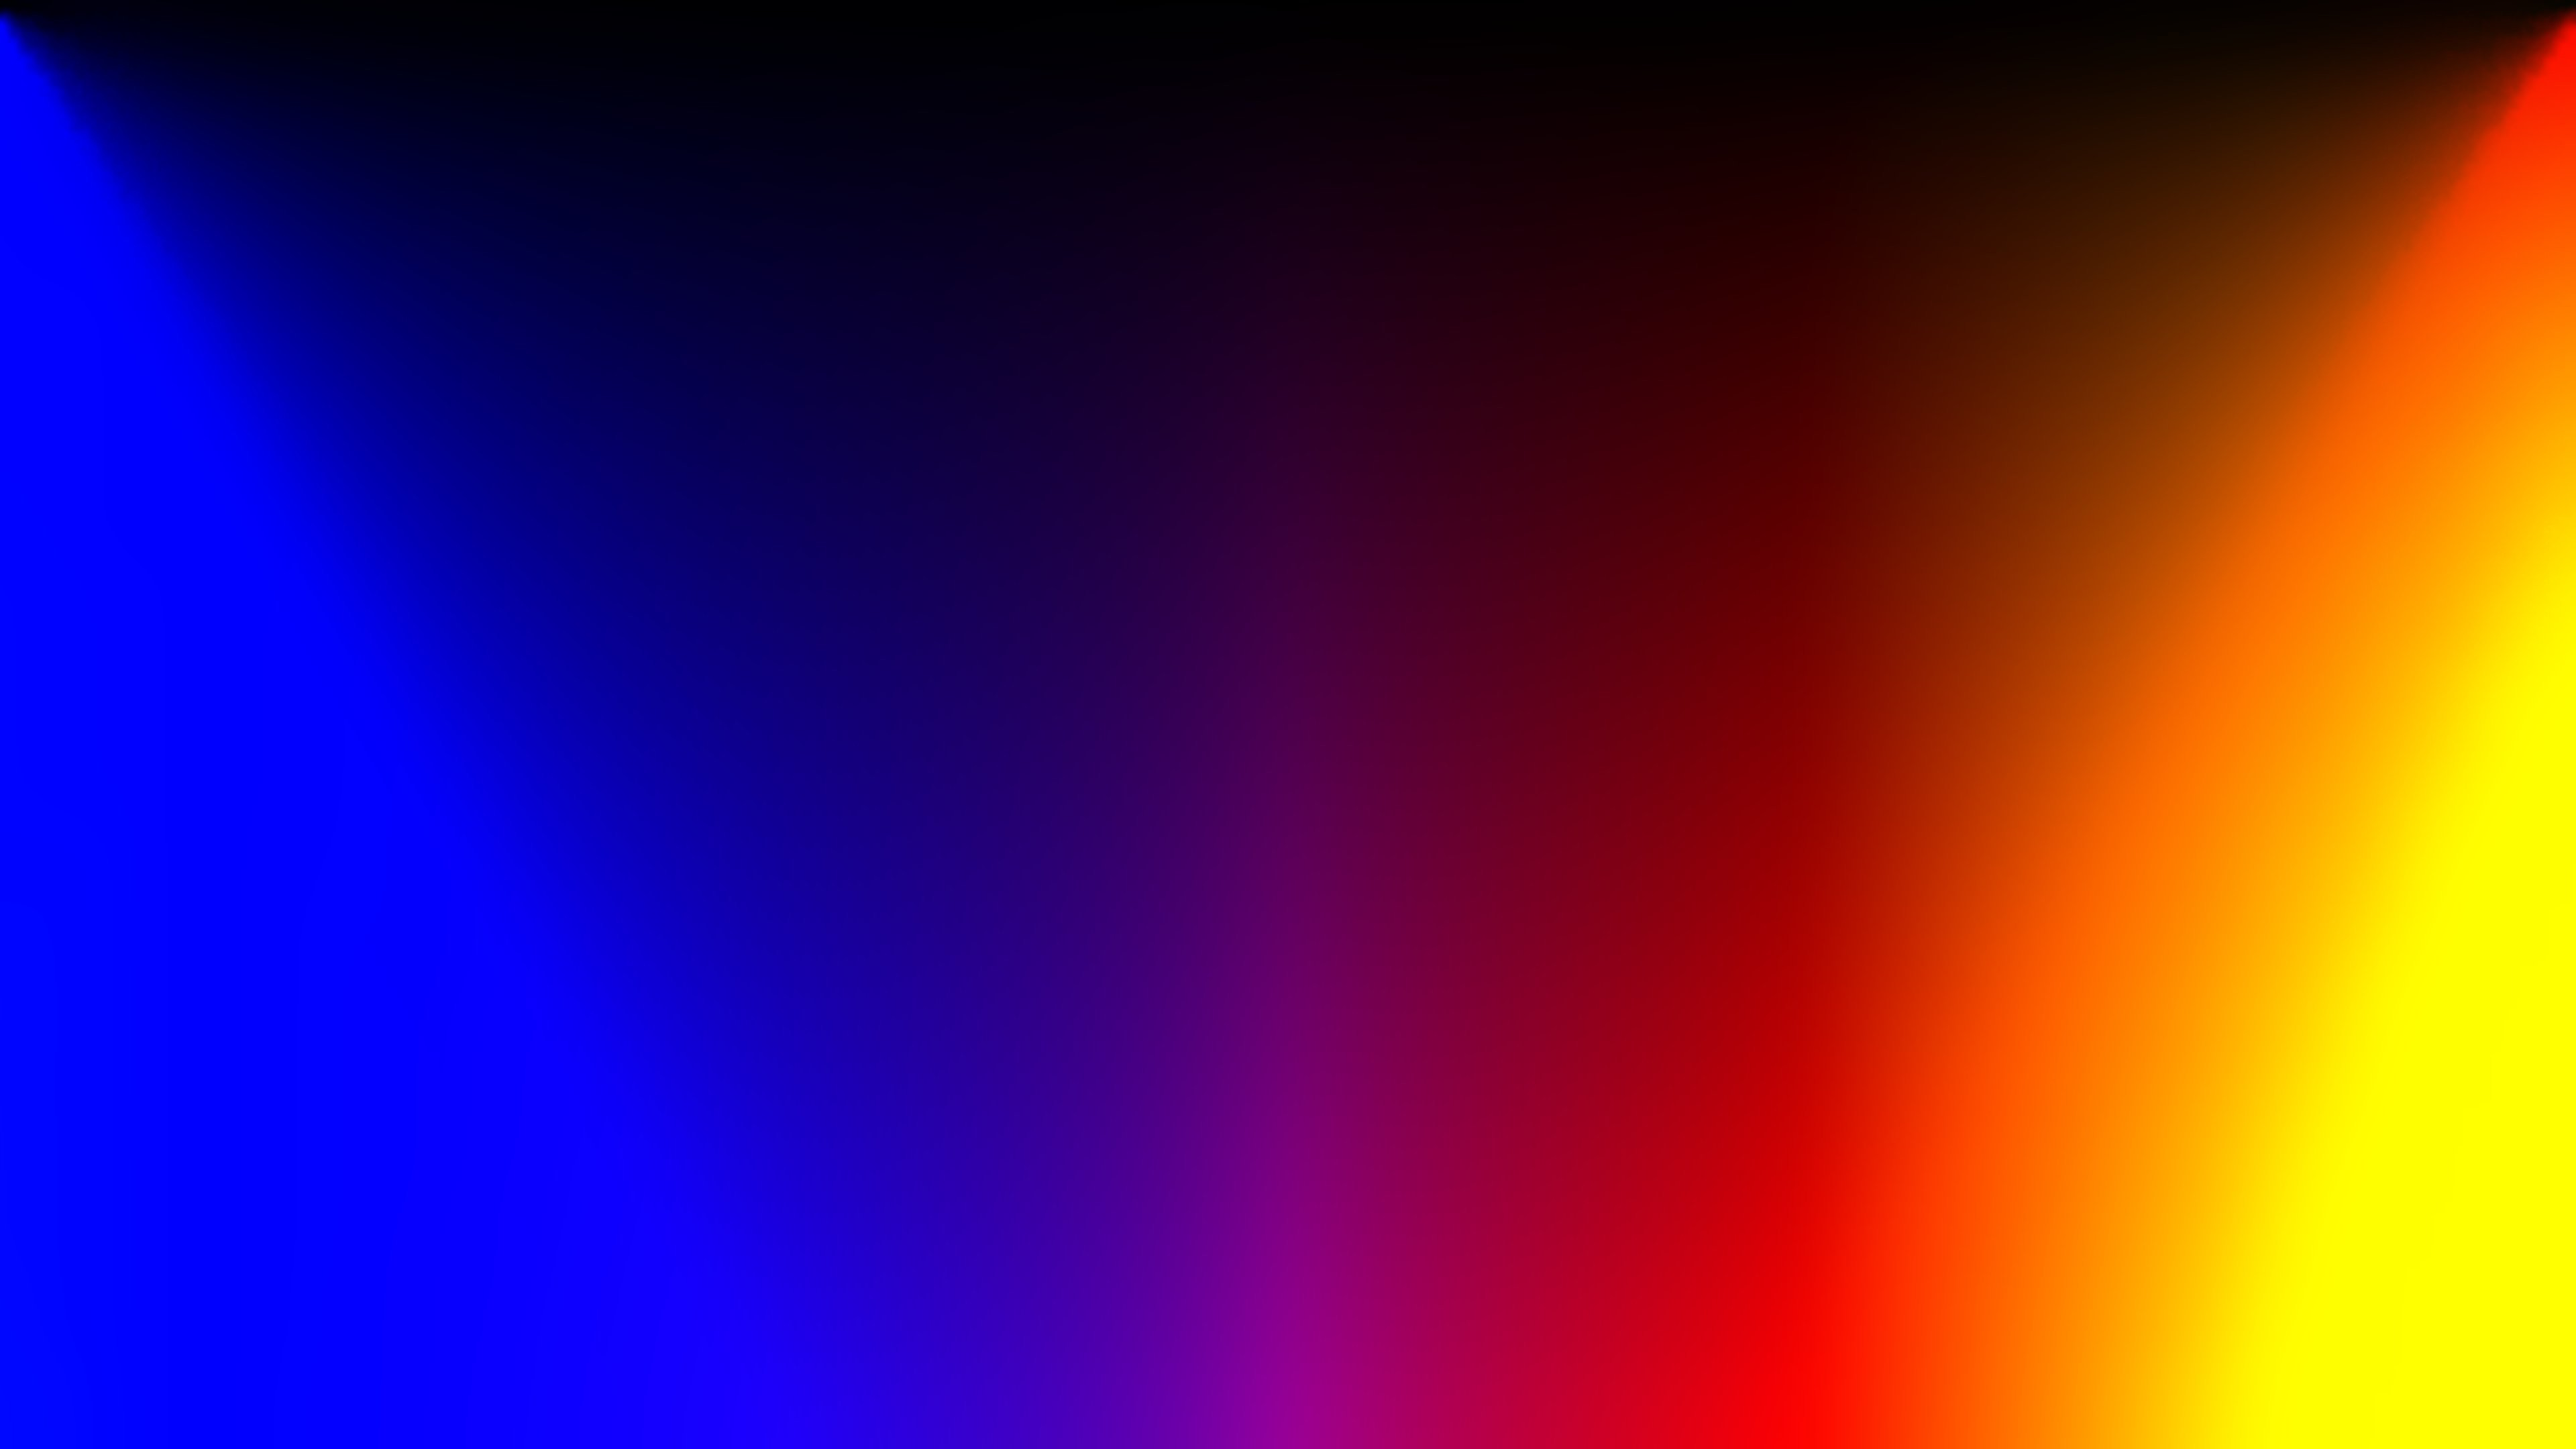 Colors colorful abstract blue purple red orange yellow wallpaper      931714   WallpaperUP